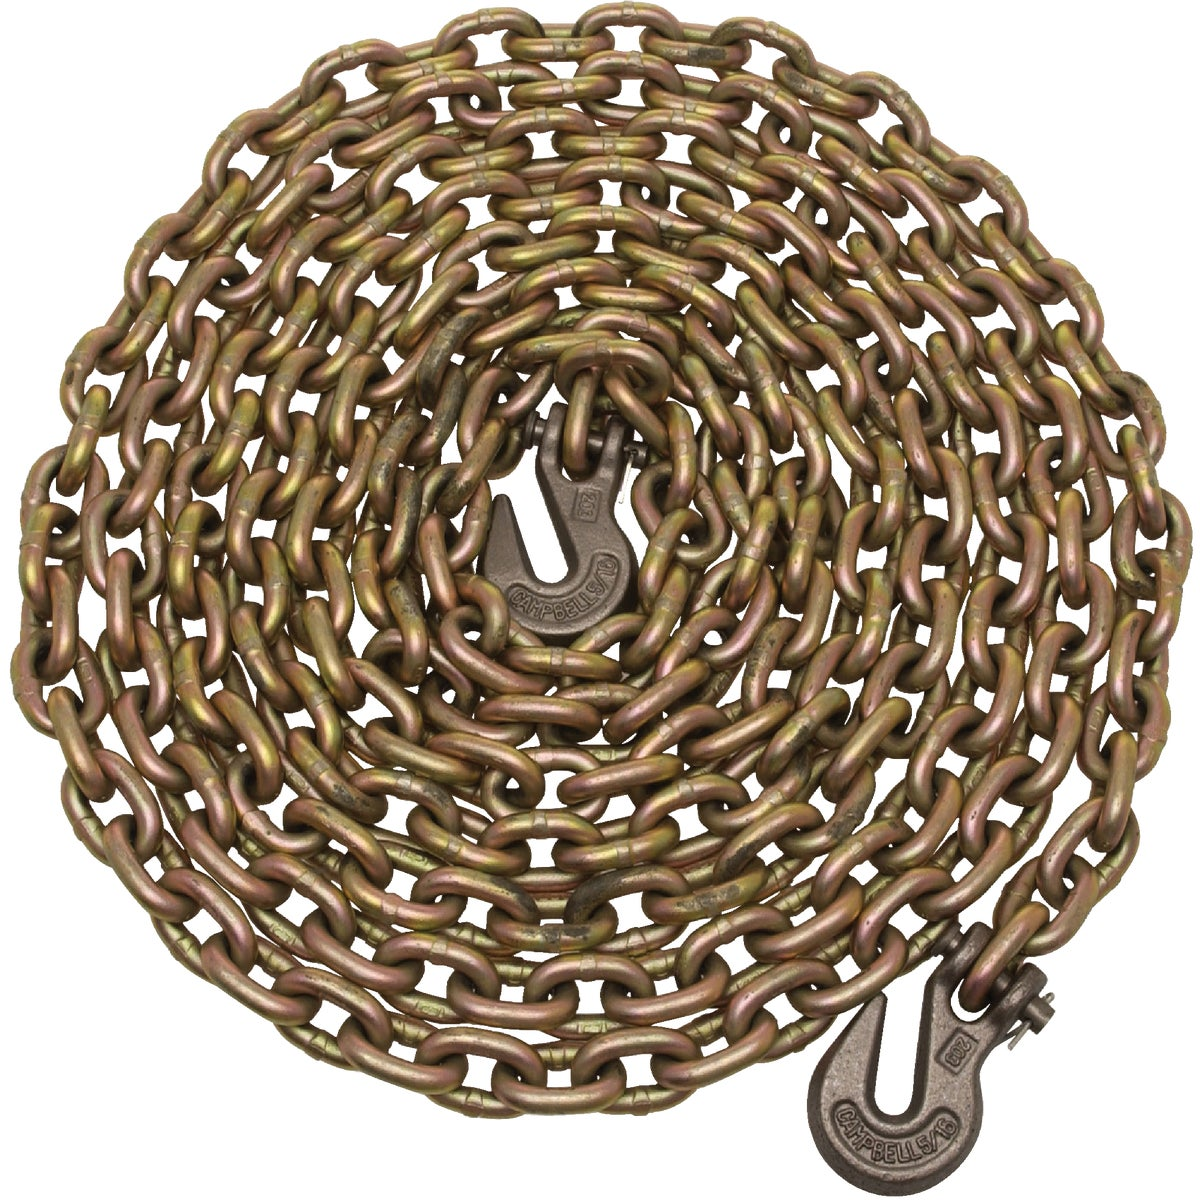 "3/8""X20' G70 TRNSP CHAIN - T0513698 by Cooper Campbell Apex"